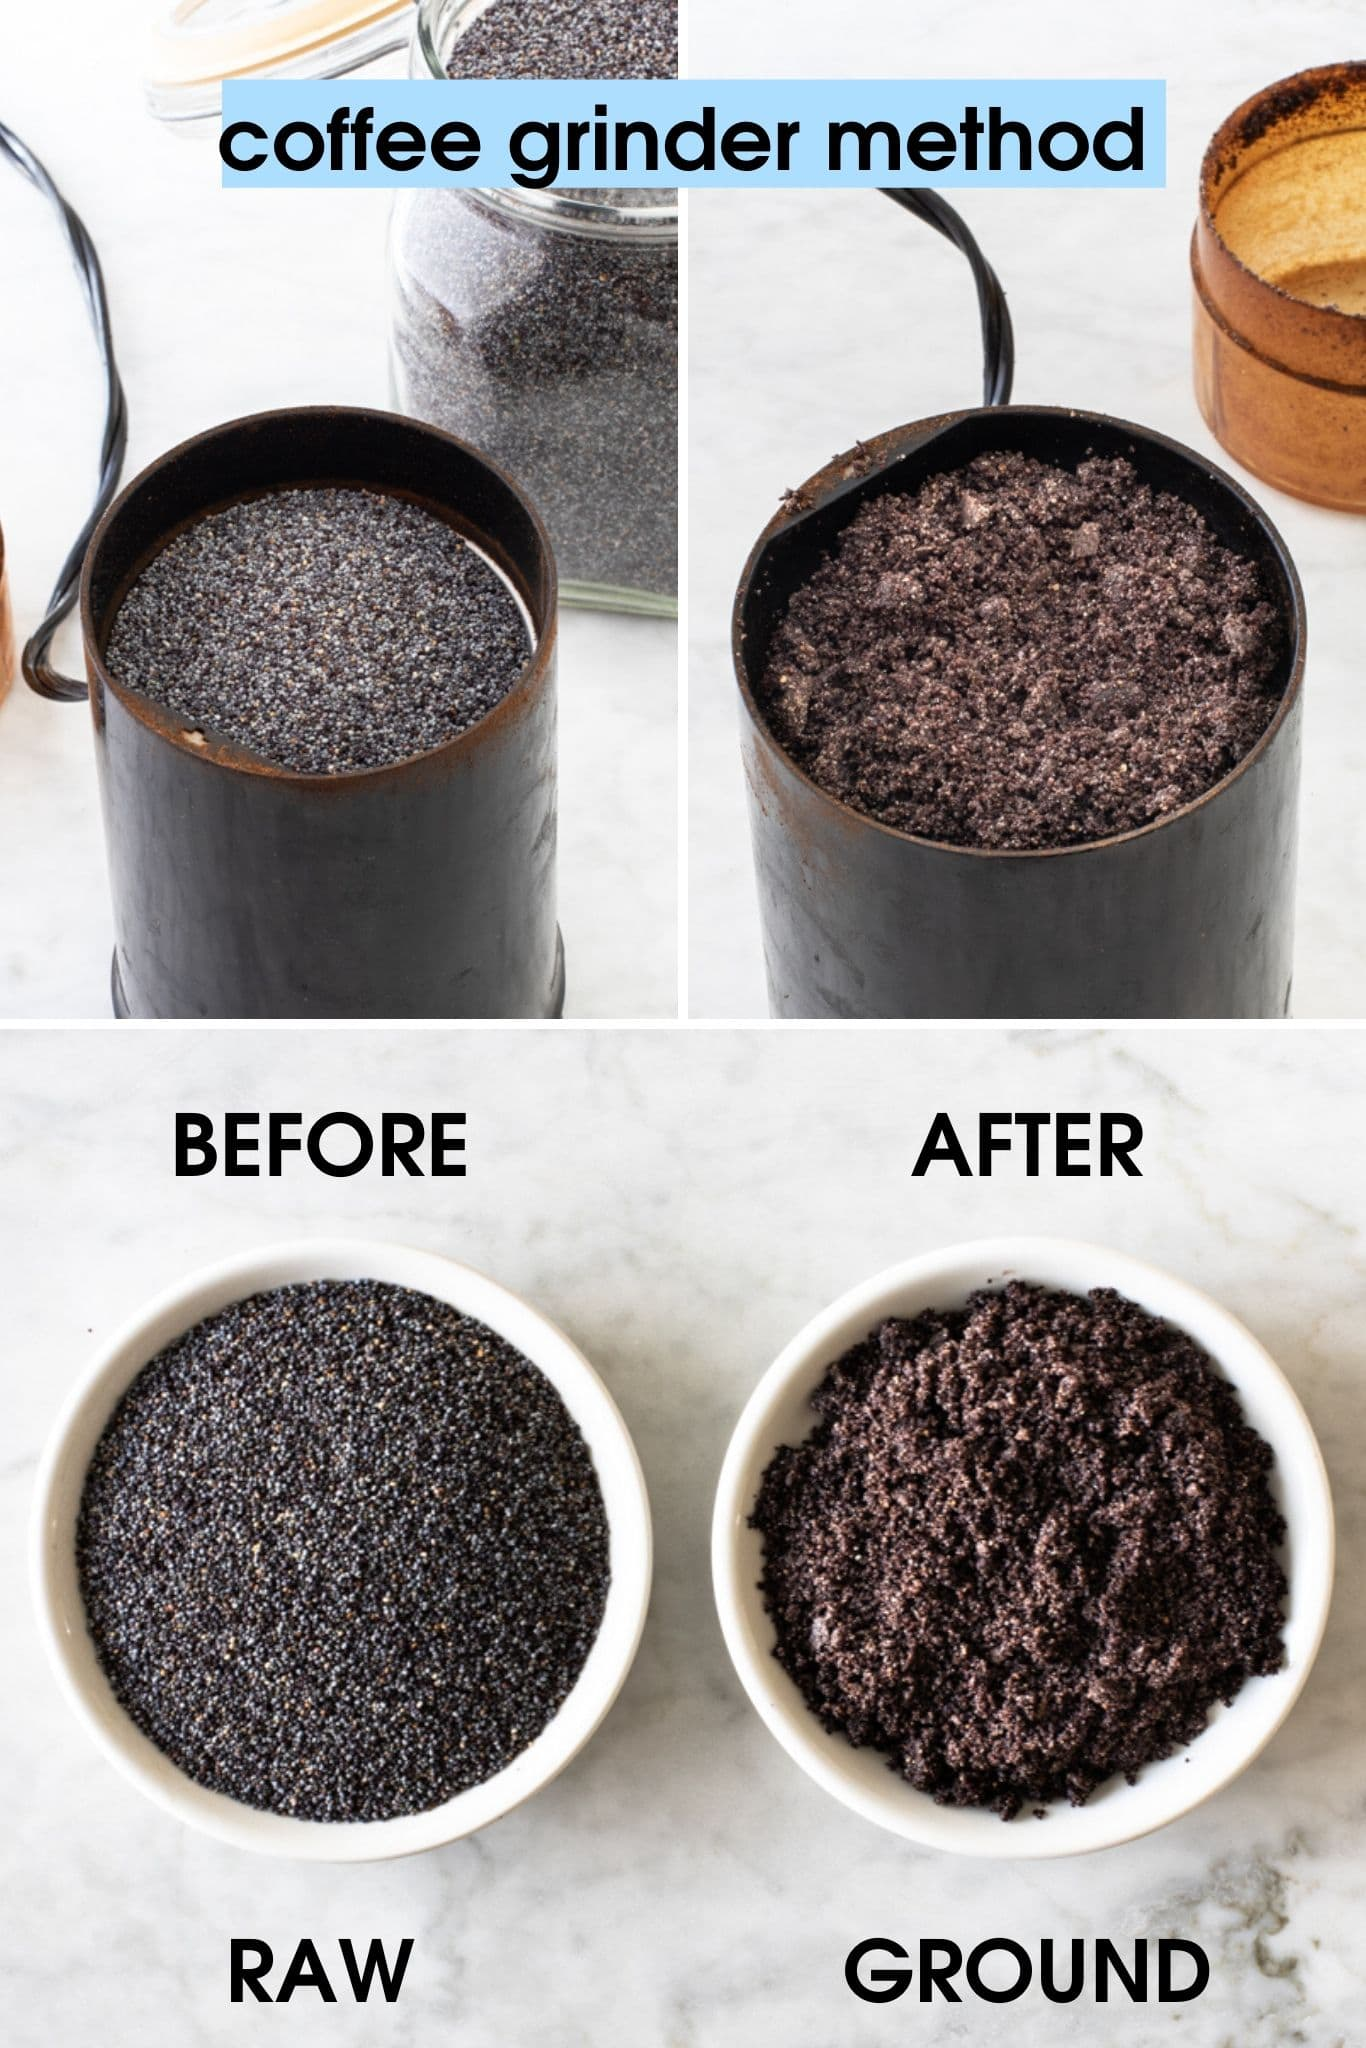 photos showing how to grind poppy seeds in a coffee grinder, showing before and after | from verygoodcook.com